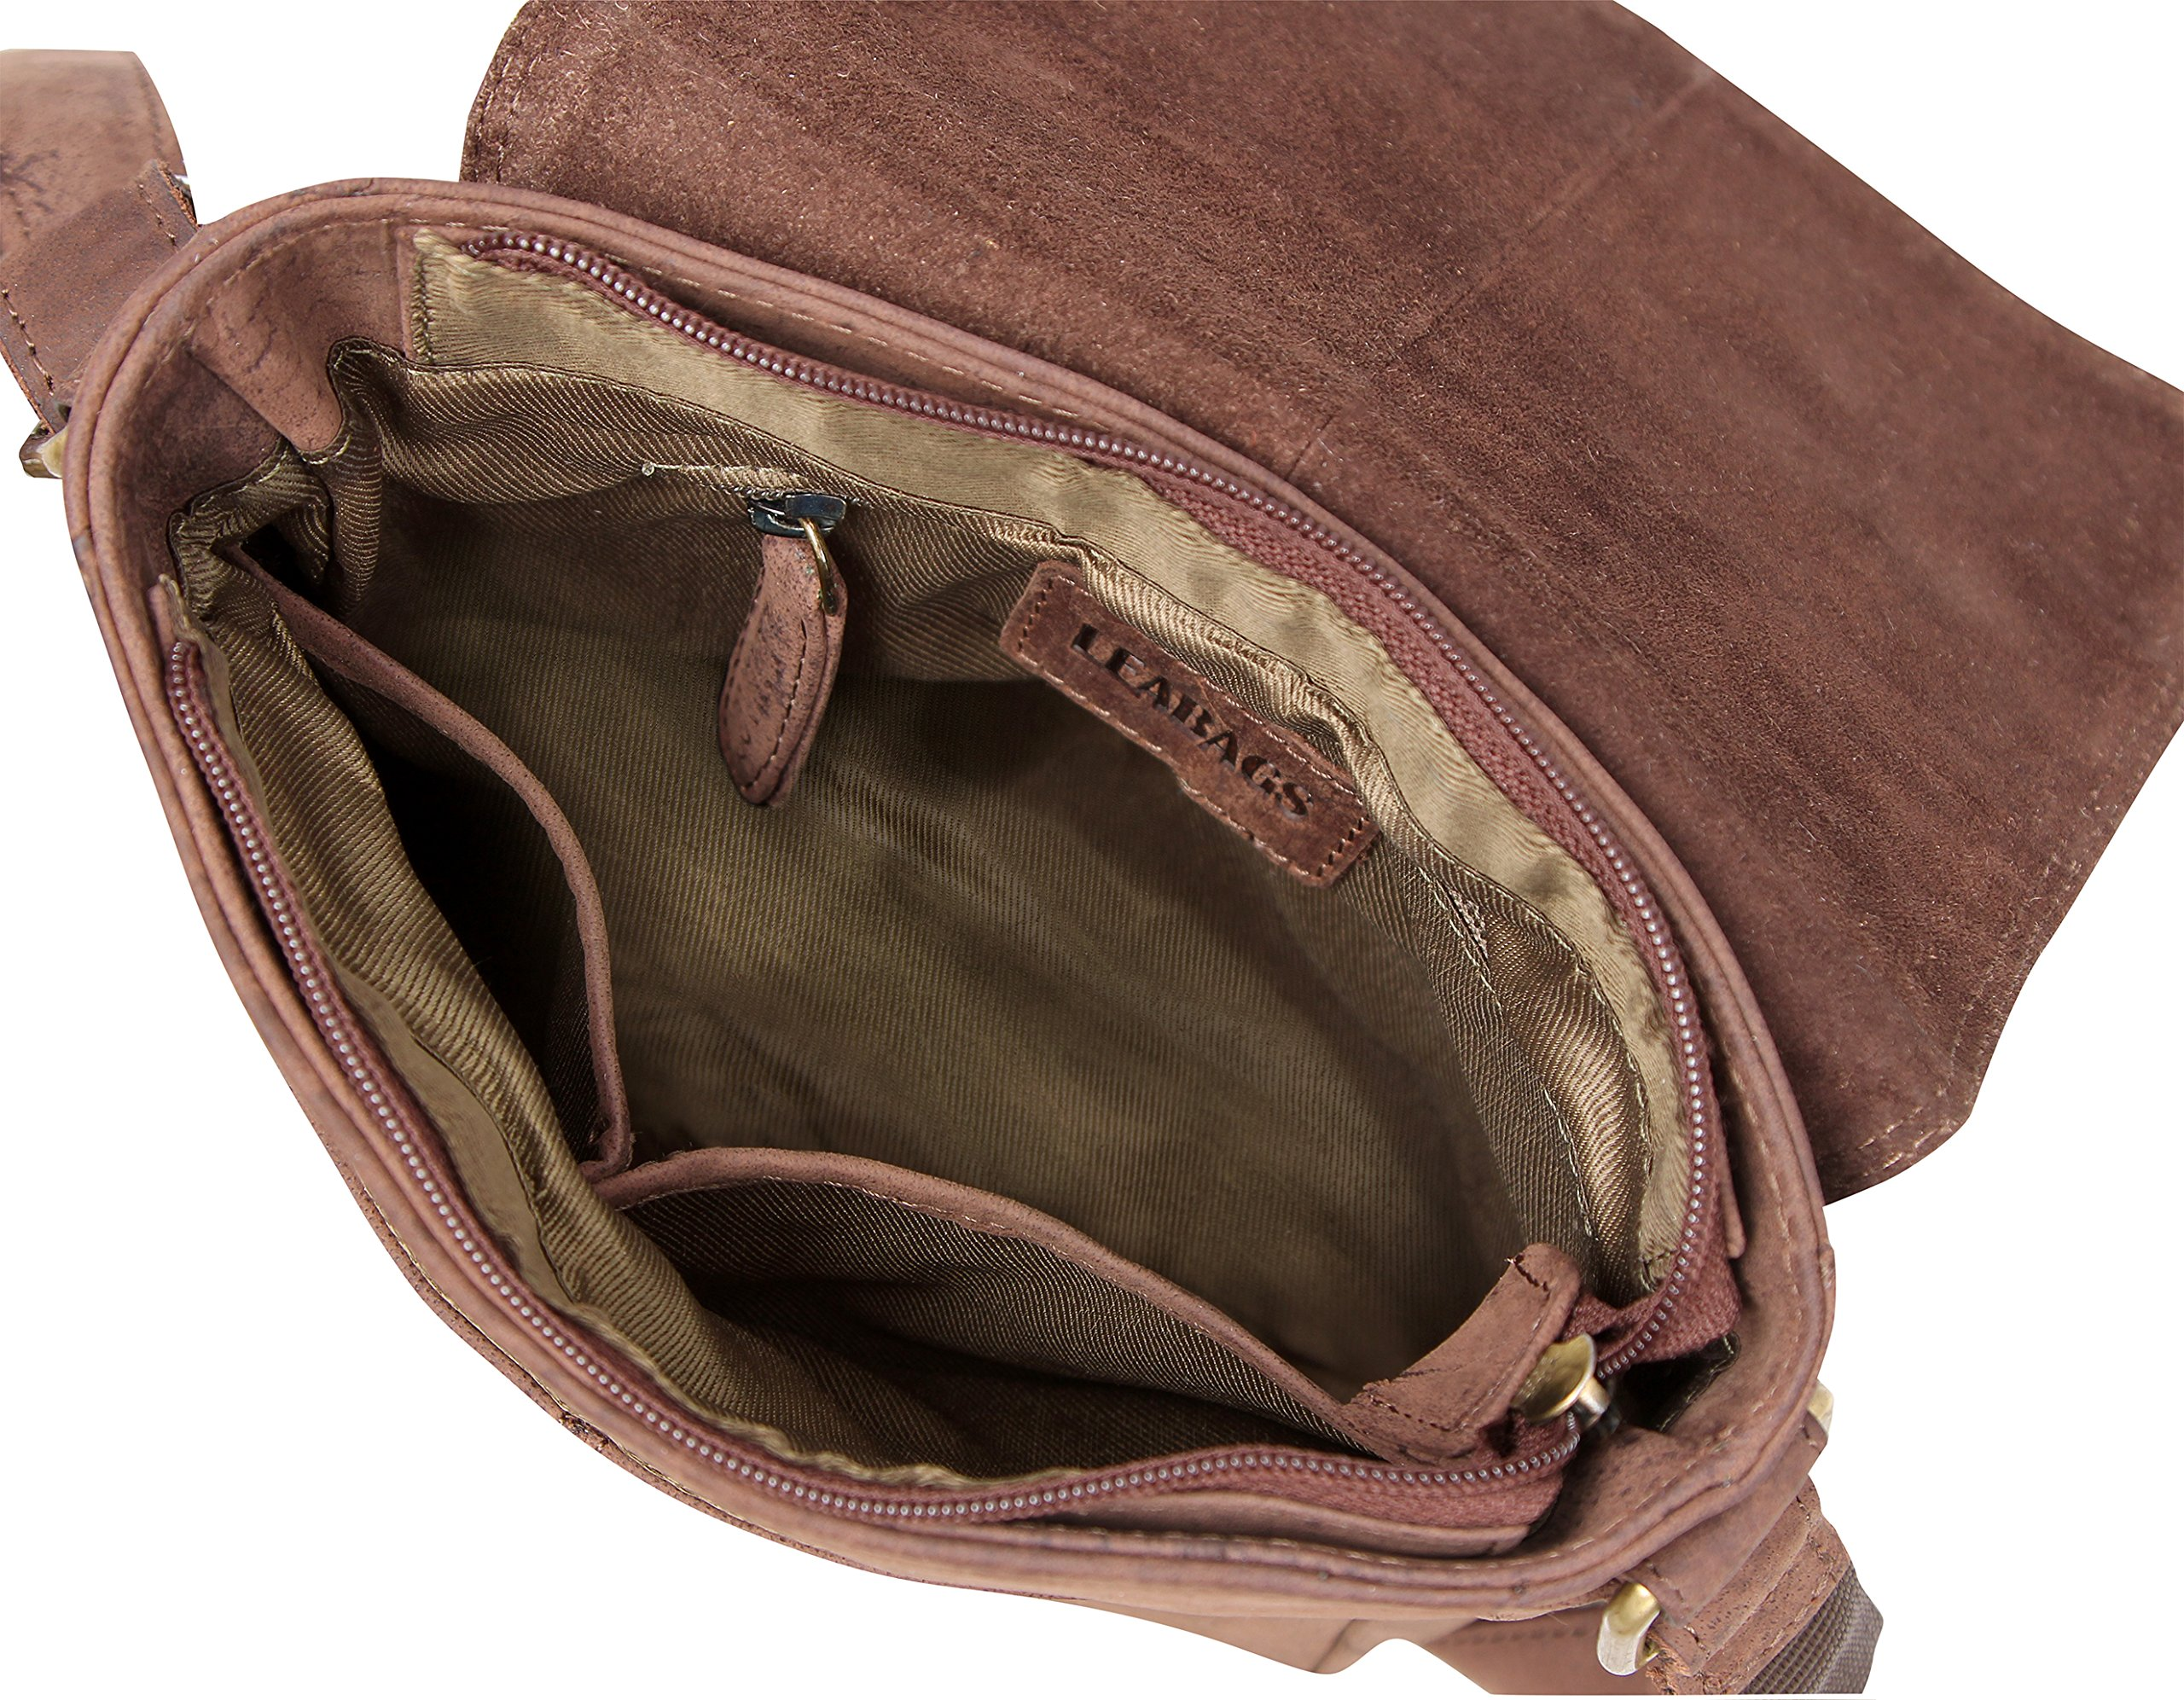 LEABAGS Weston genuine buffalo leather city bag in vintage style - Nutmeg by LEABAGS (Image #7)